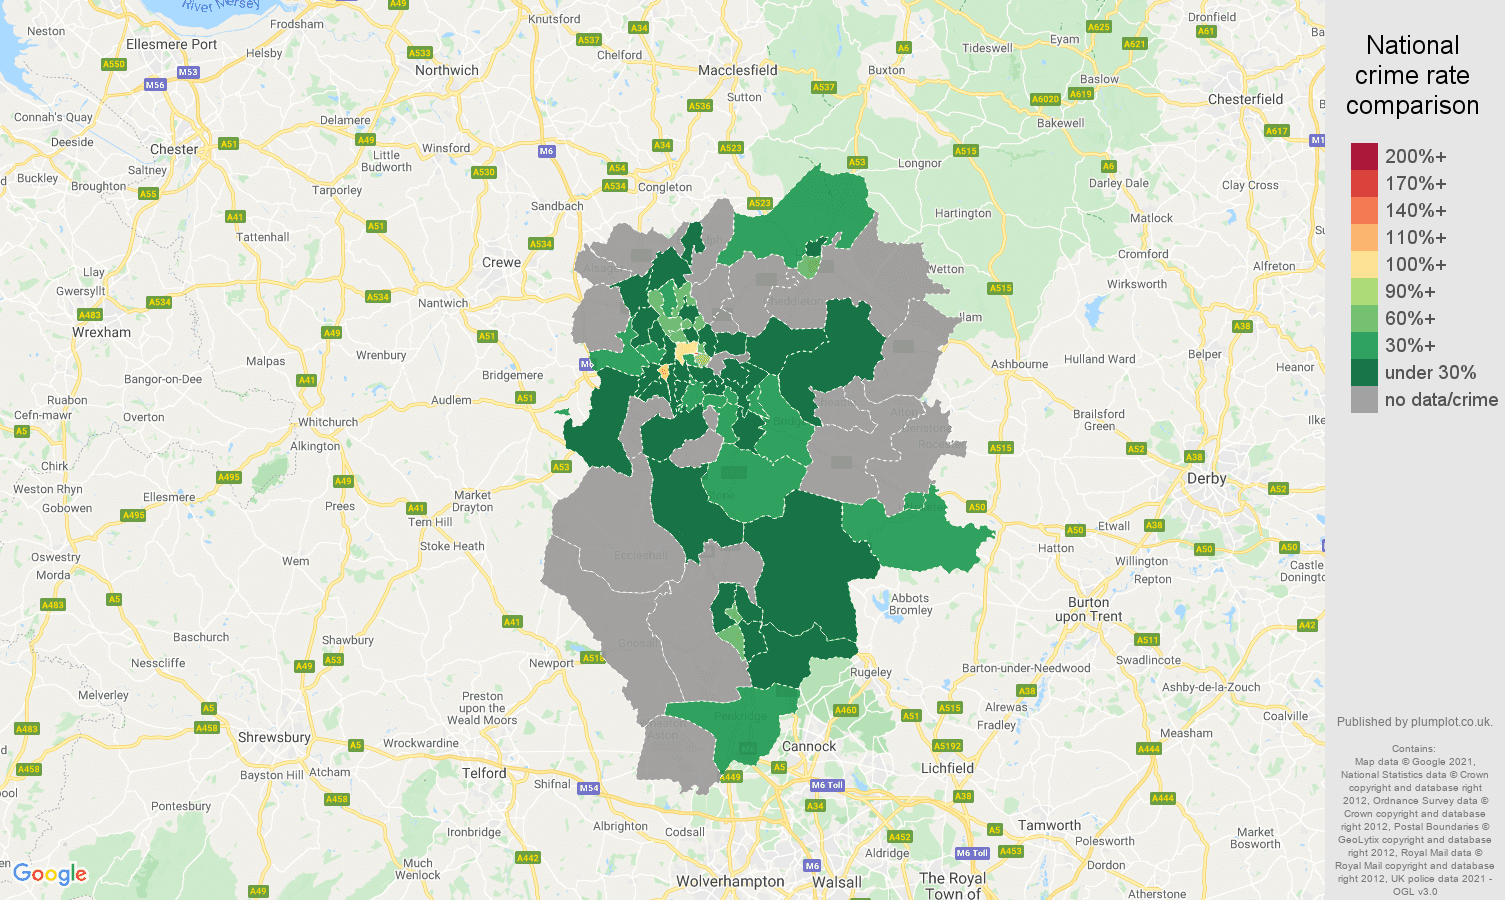 Stoke on Trent theft from the person crime rate comparison map